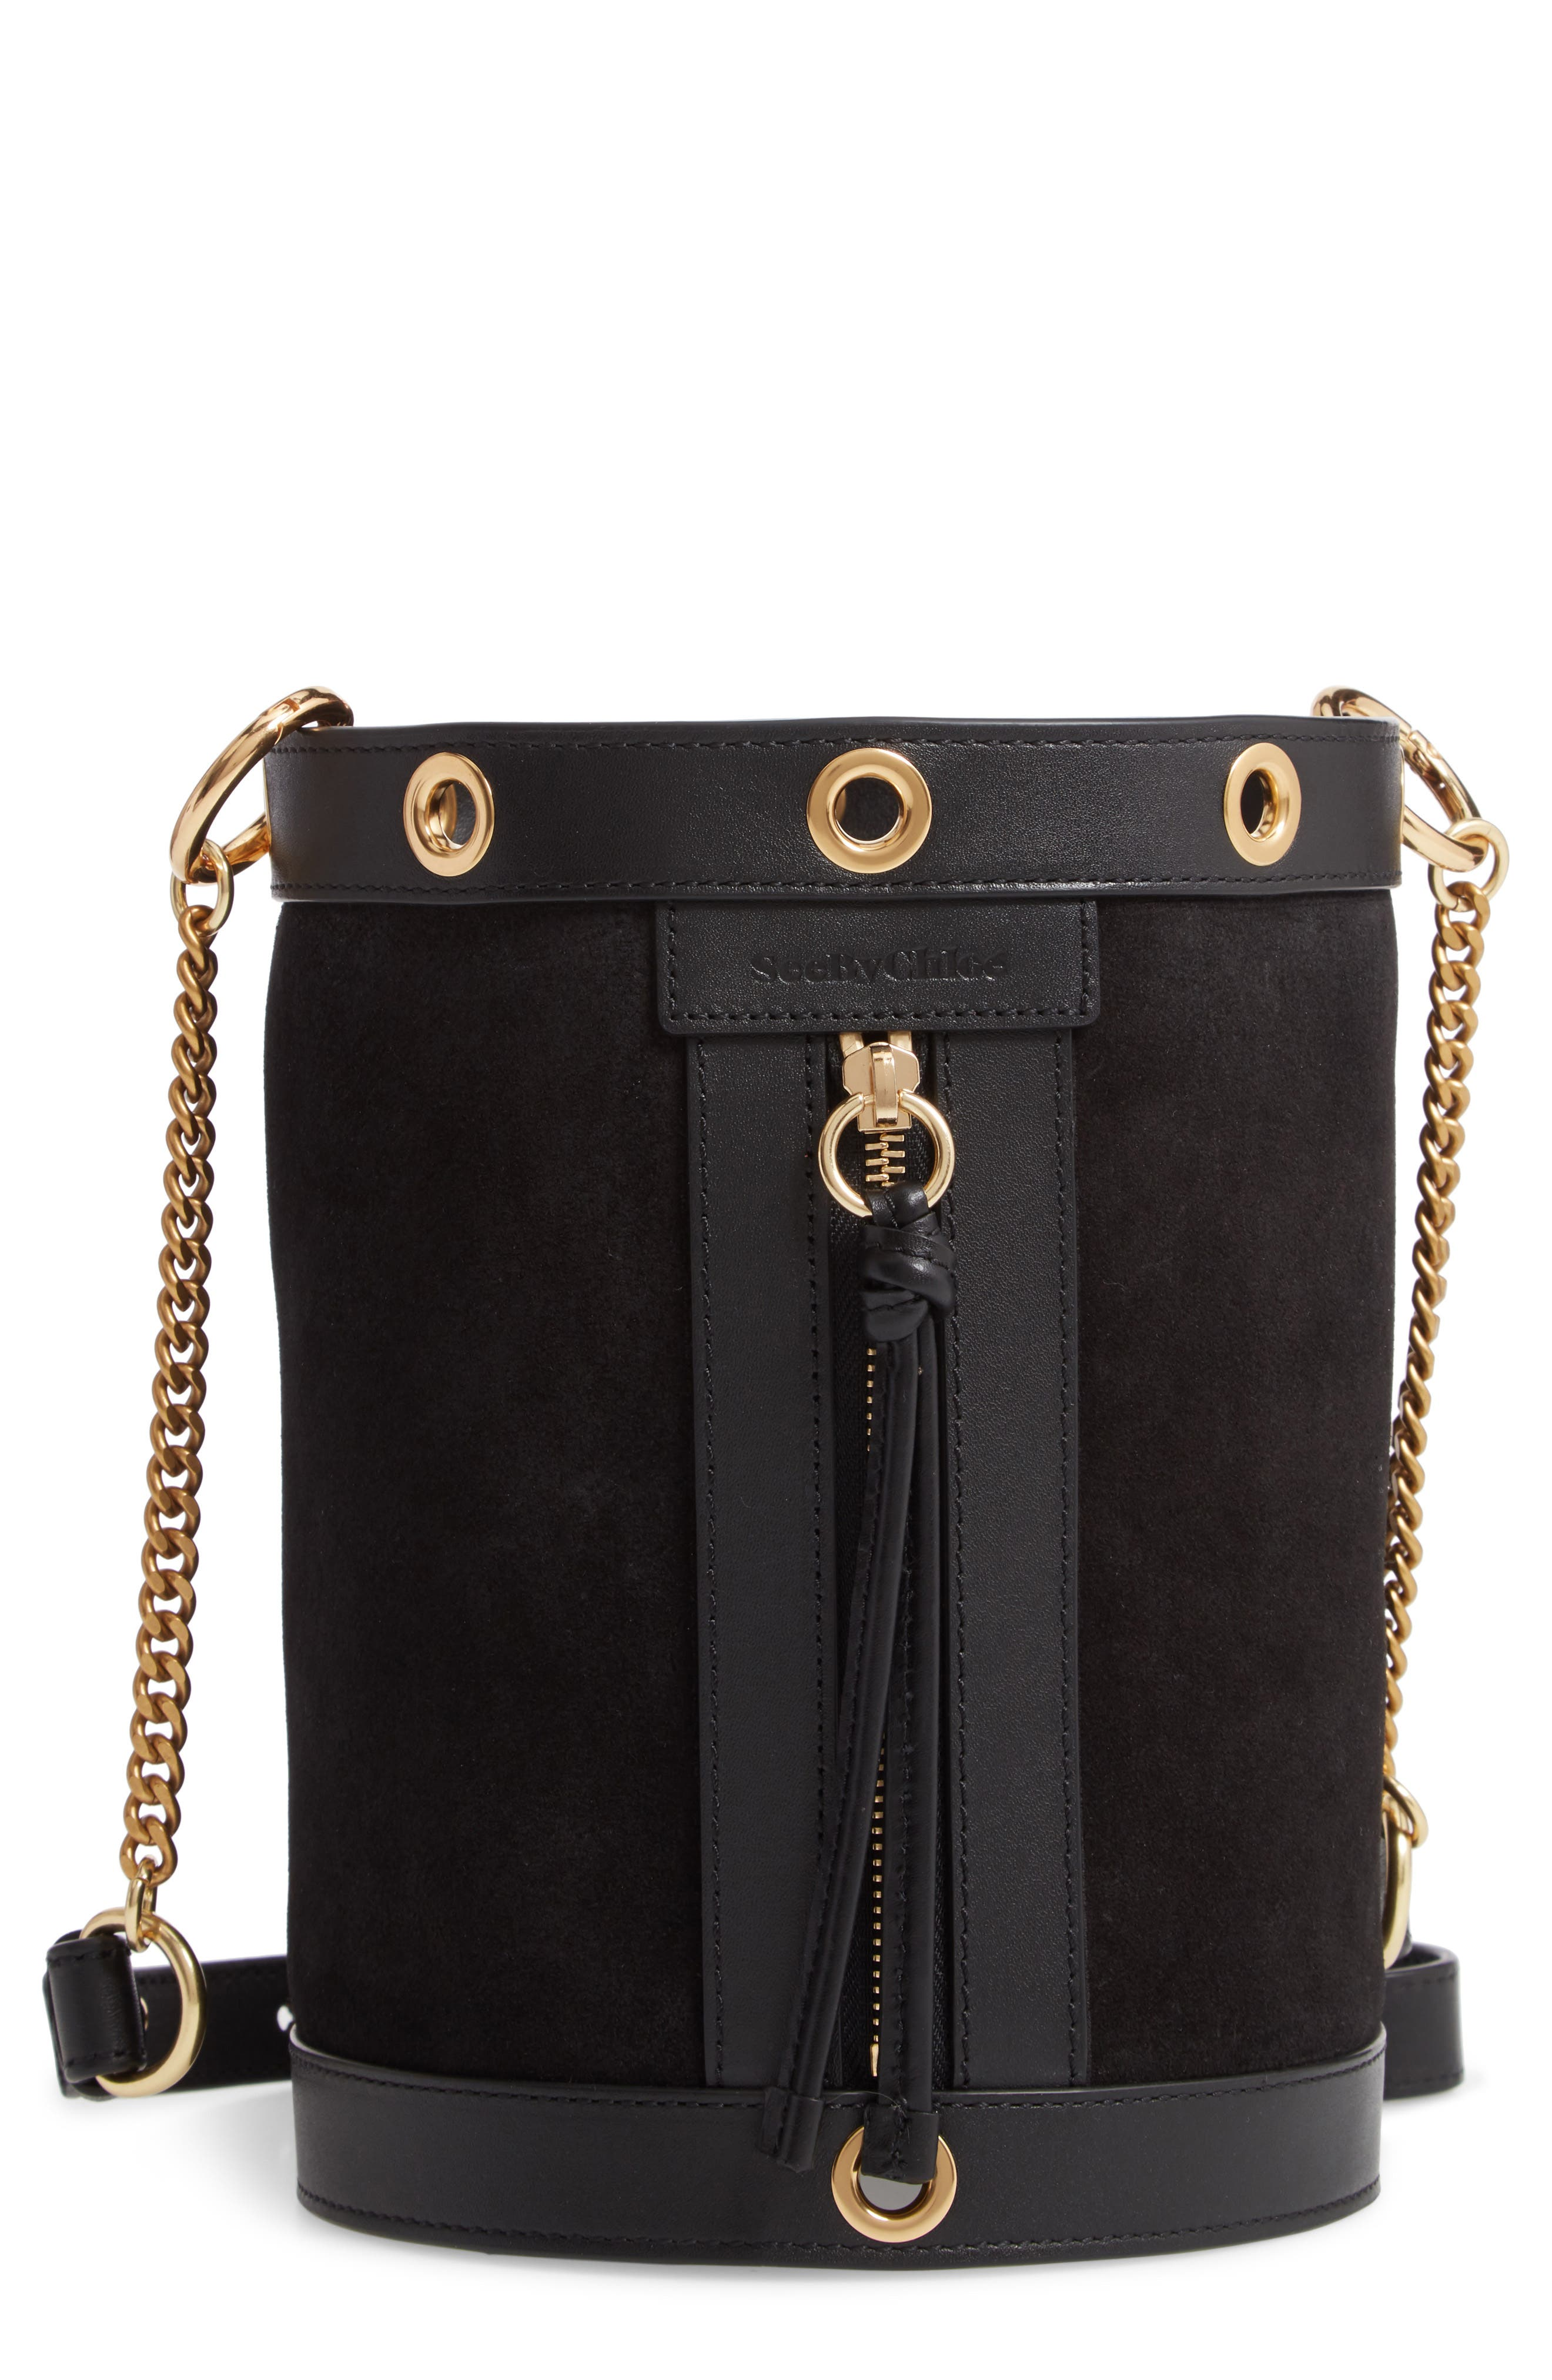 SEE BY CHLOÉ, Debbie Leather Bucket Bag, Main thumbnail 1, color, 001